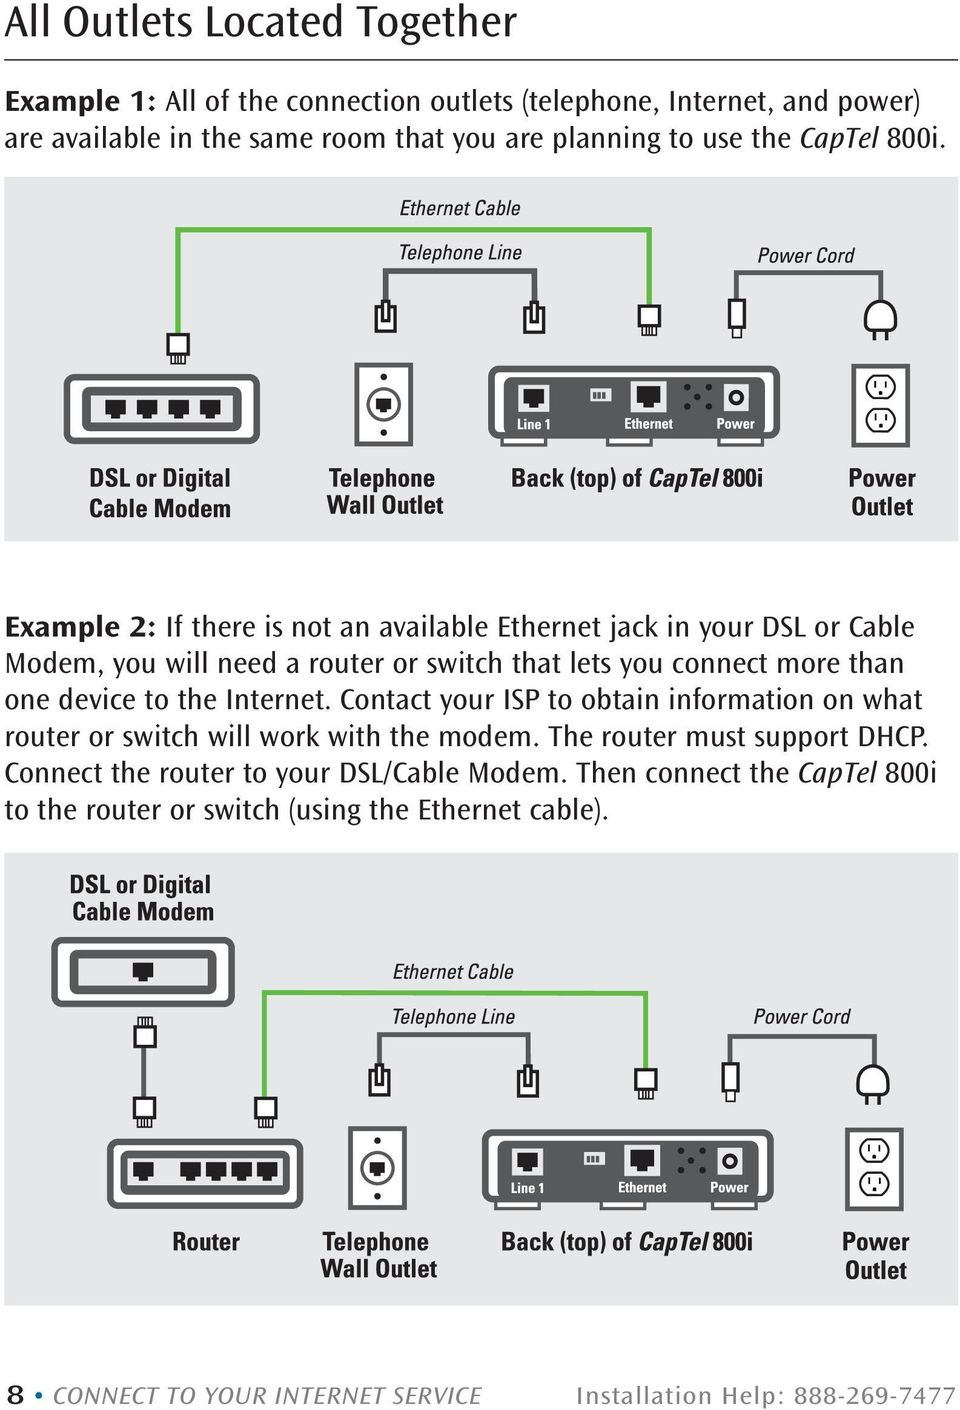 Example 2: If there is not an available Ethernet jack in your DSL or Cable Modem, you will need a router or switch that lets you connect more than one device to the